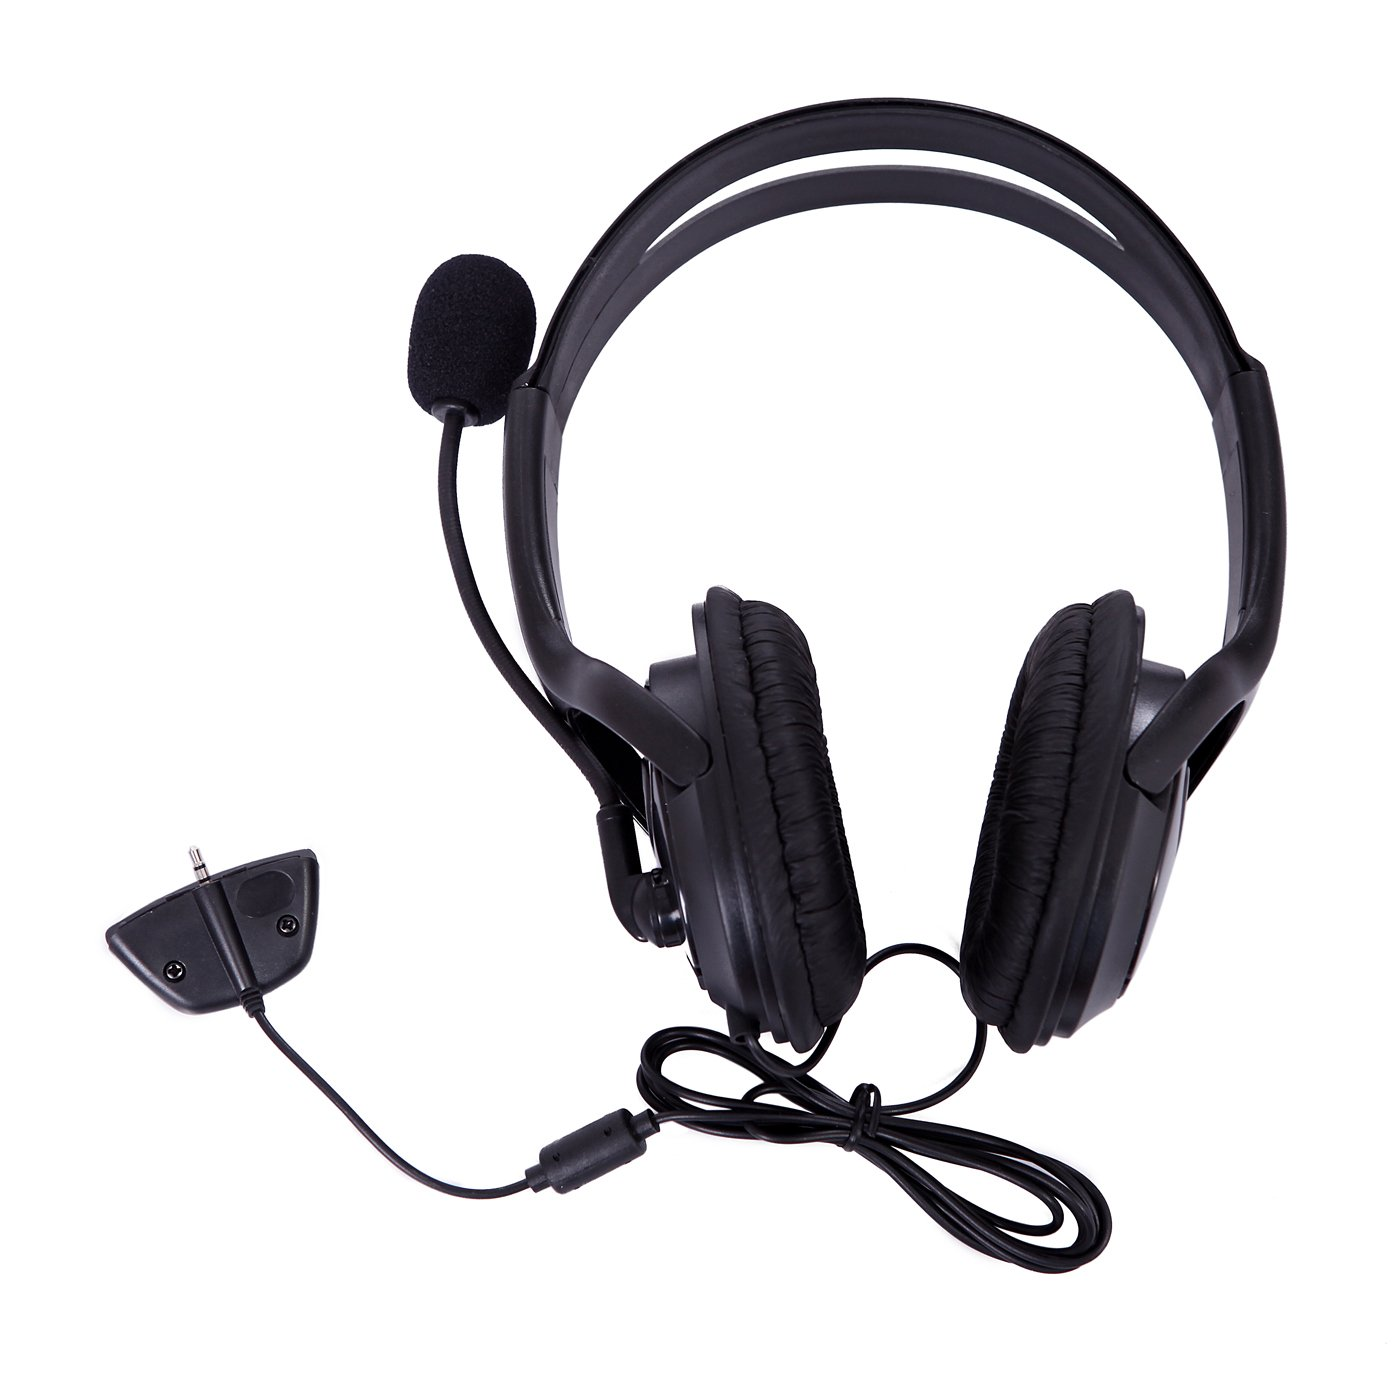 HDE Gaming Chat Headphone Headset with Microphone Mic for Microsoft Xbox 360 Live original xiberia v2 led gaming headphones with microphone mic usb vibration deep bass stereo pc gamer headset gaming headset